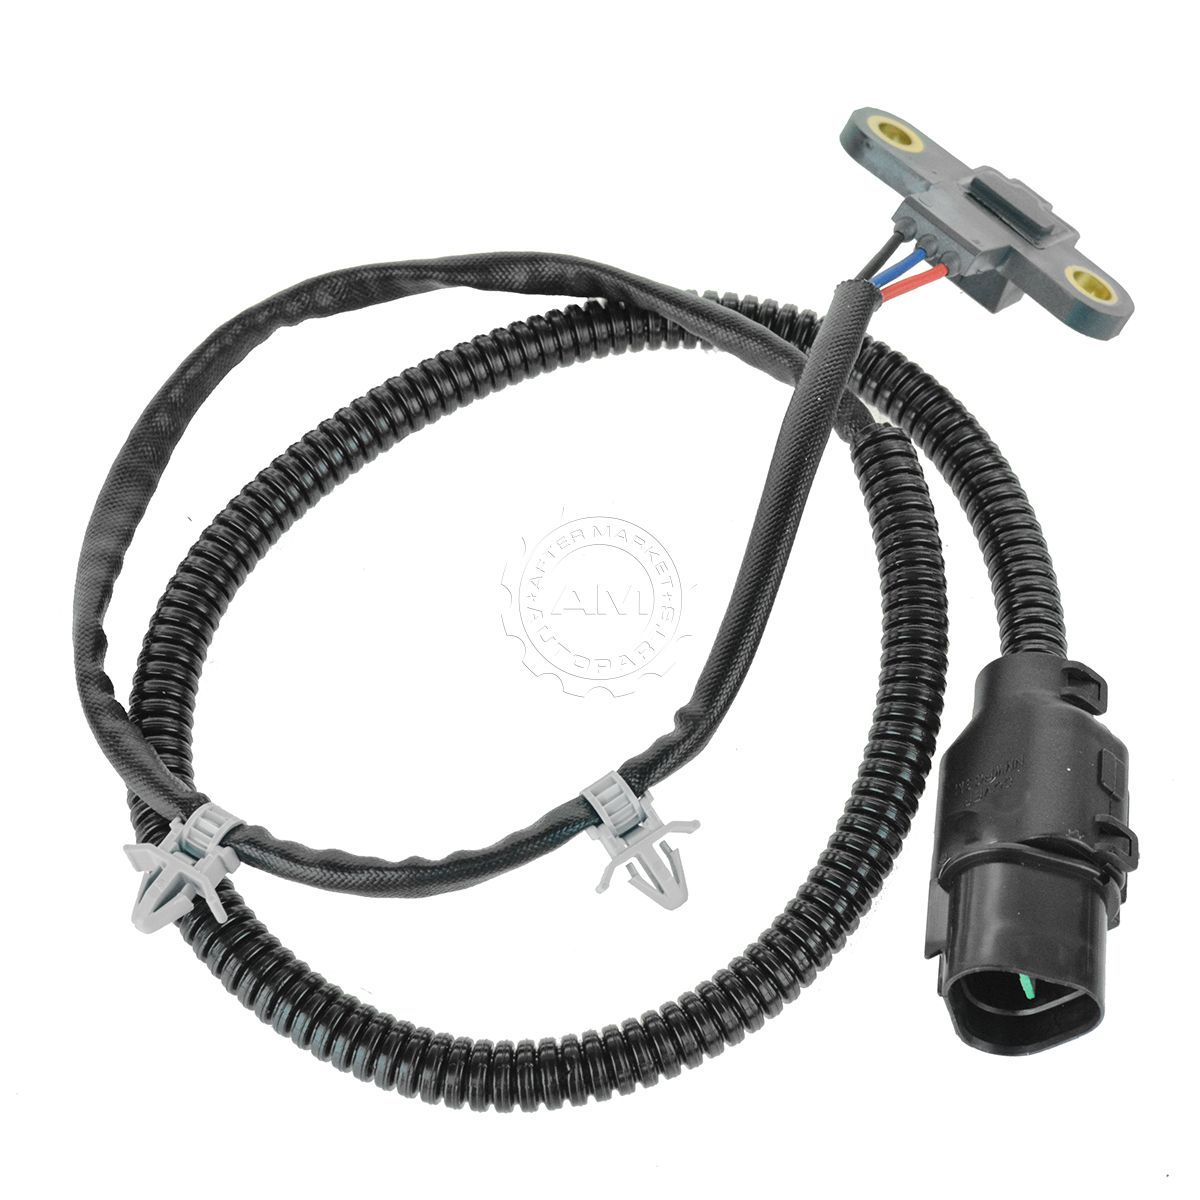 Crankshaft Position Sensor CPS for Hyundai Sonata Kia Optima 2.4L L4